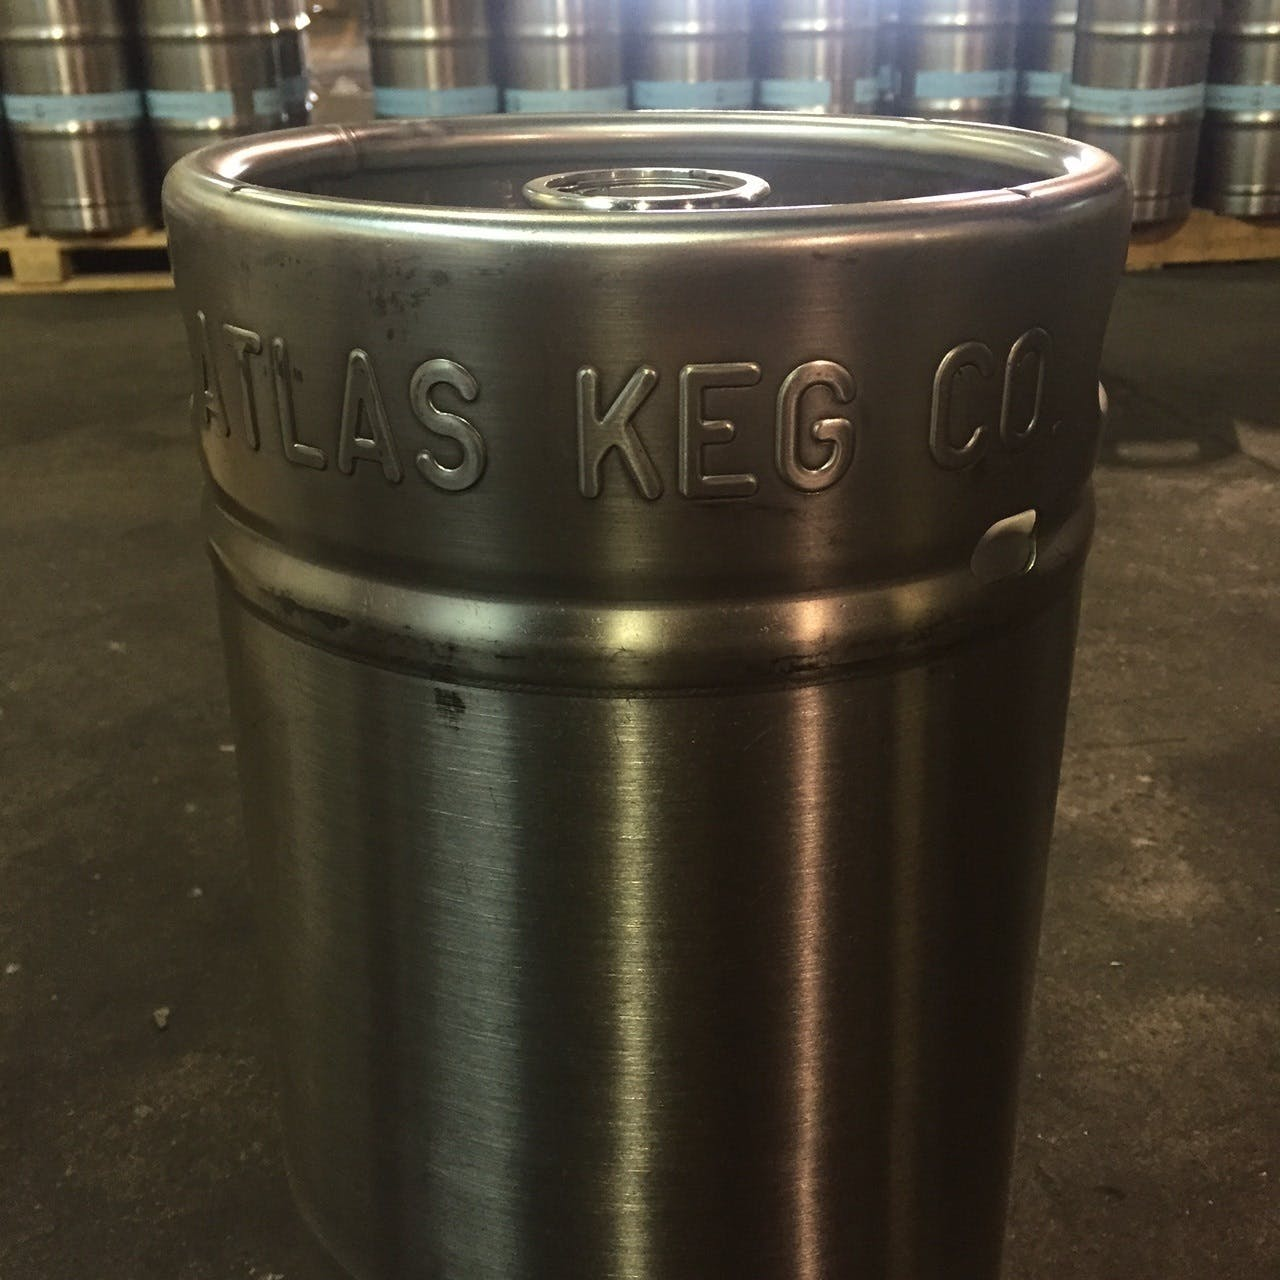 Kegs Keg sold by Atlas Keg Company